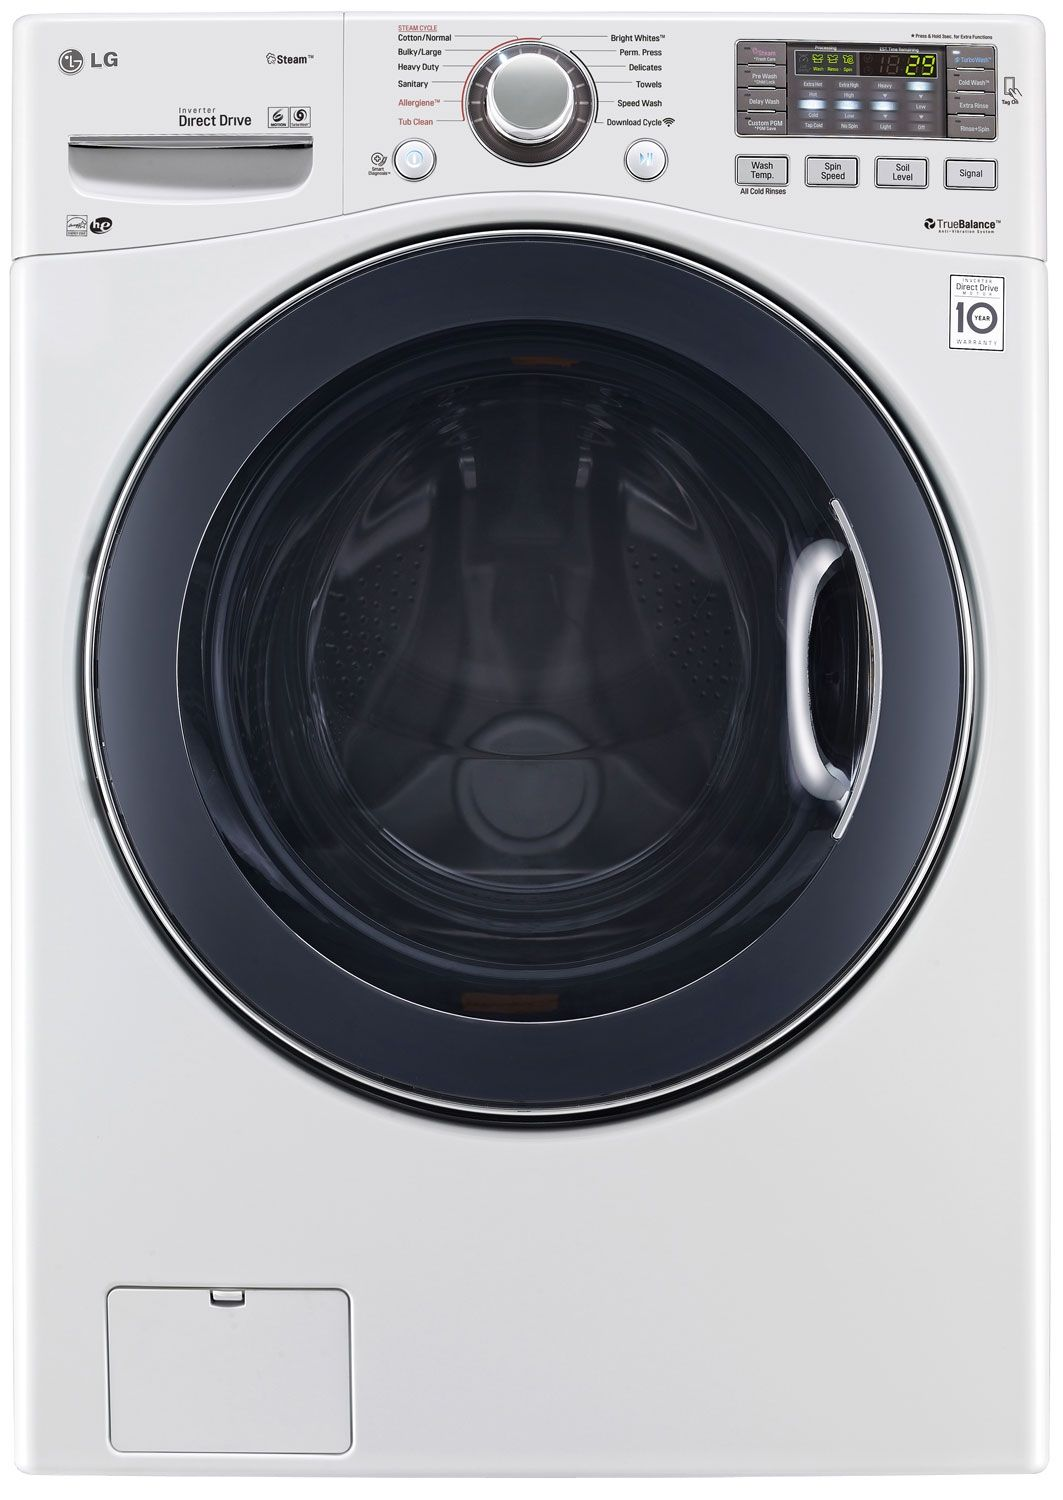 LG WMHWA Front Load Washers Condo Pinterest - Abt washers